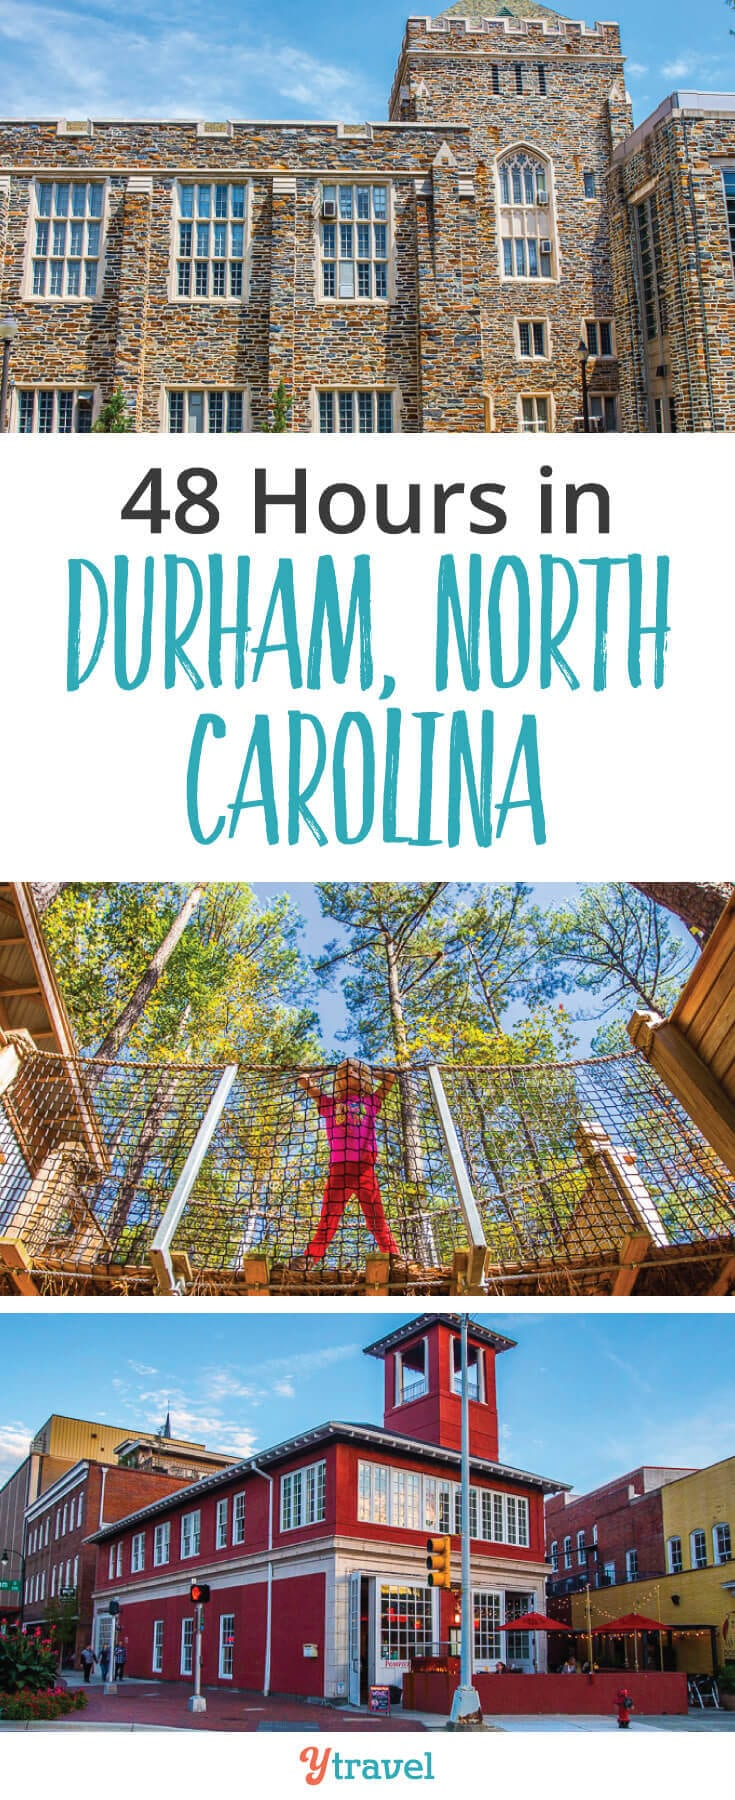 Things to do in Durham, North Carolina. Tips on what to see and do, where to eat and drink, and where to stay. Durham NC is on the rise. Check it out.